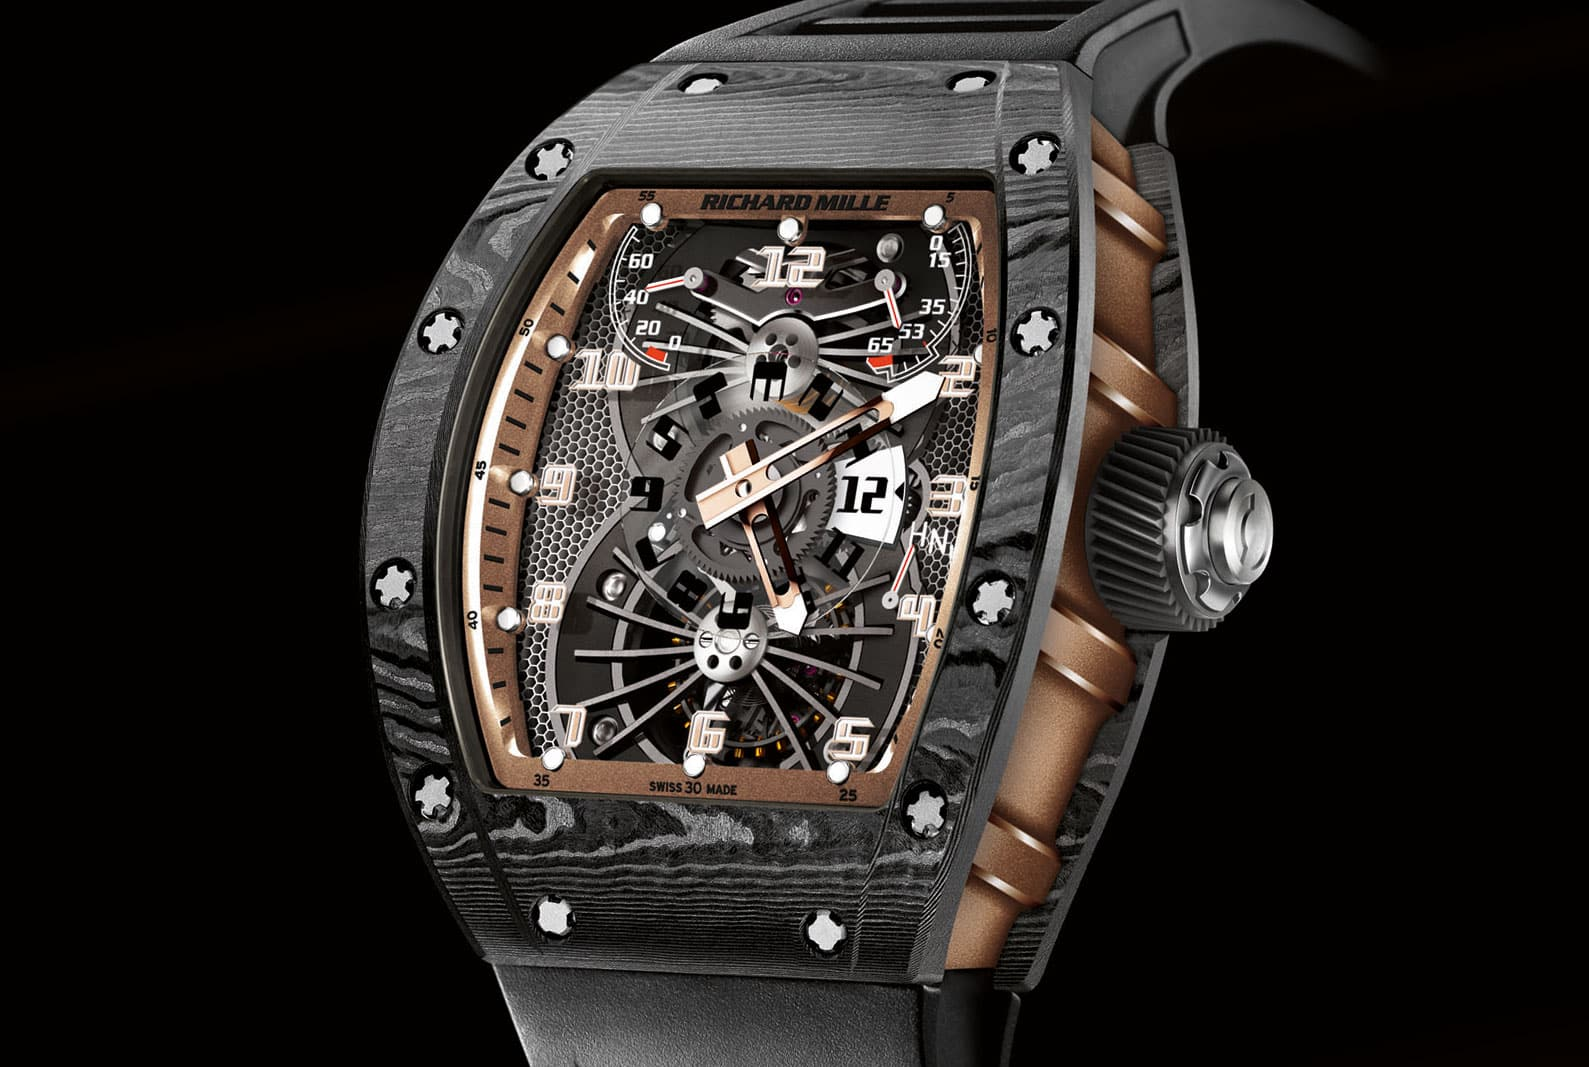 Richard Mille rM 022 Aerodyne Tourbillon Asia edition